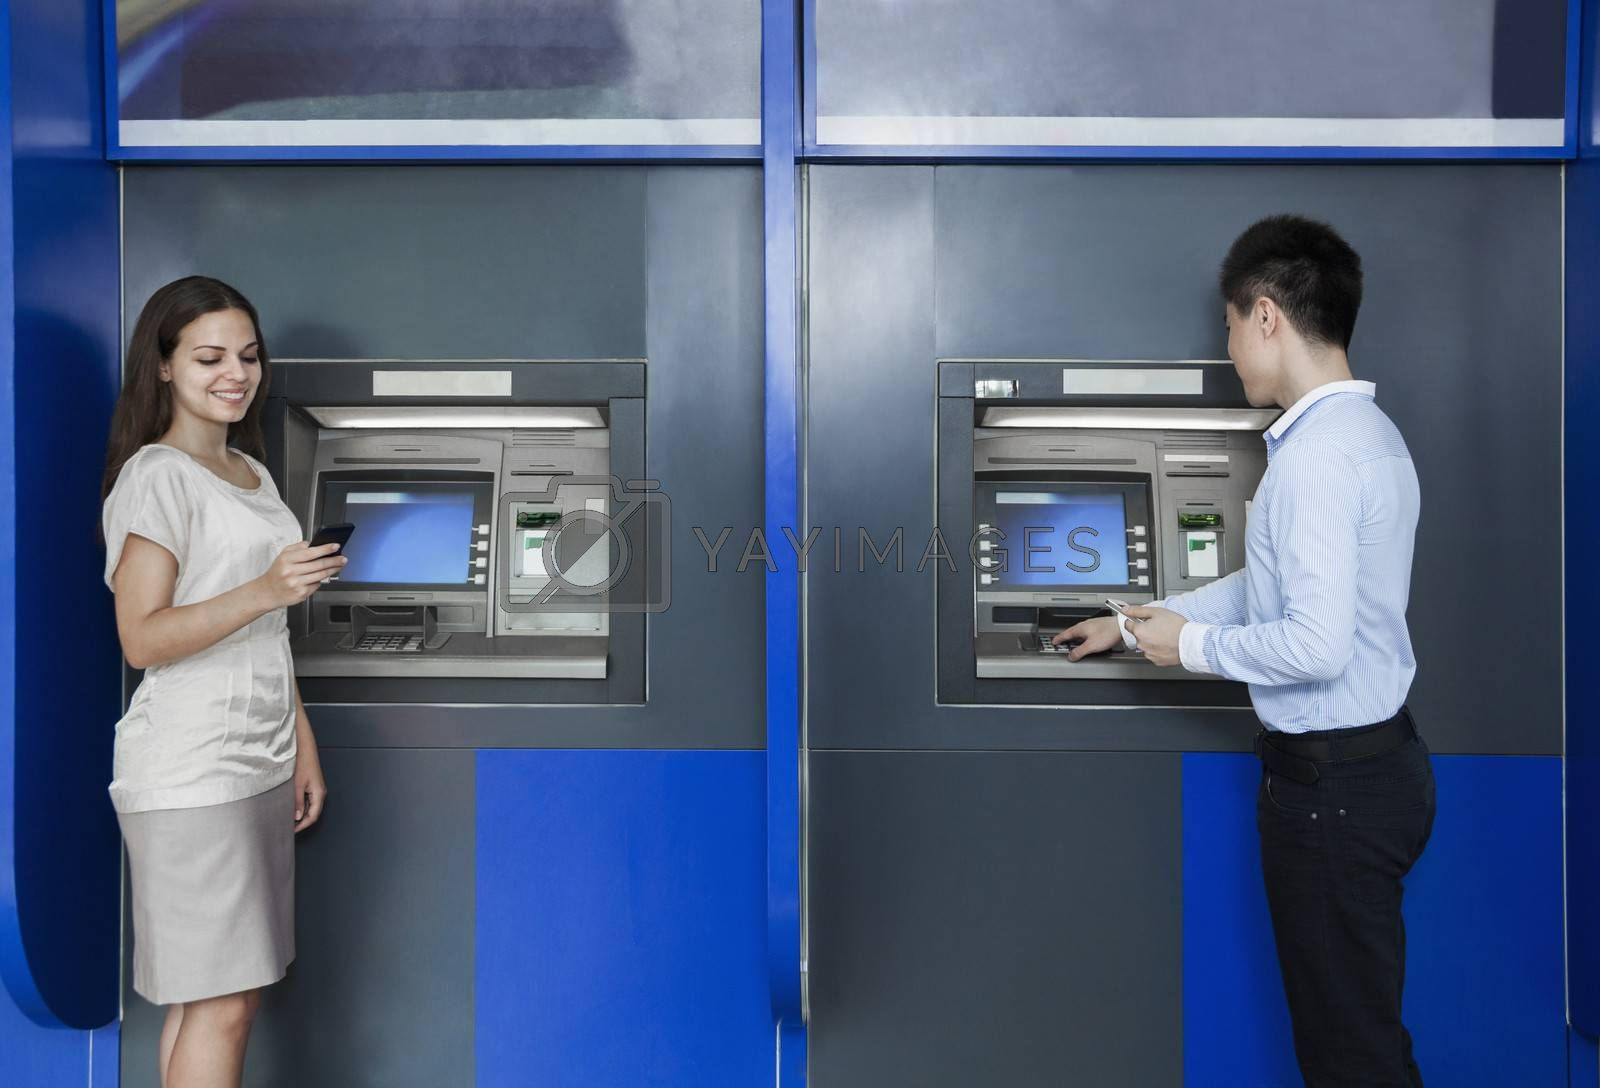 Two people standing and withdrawing money from an ATM